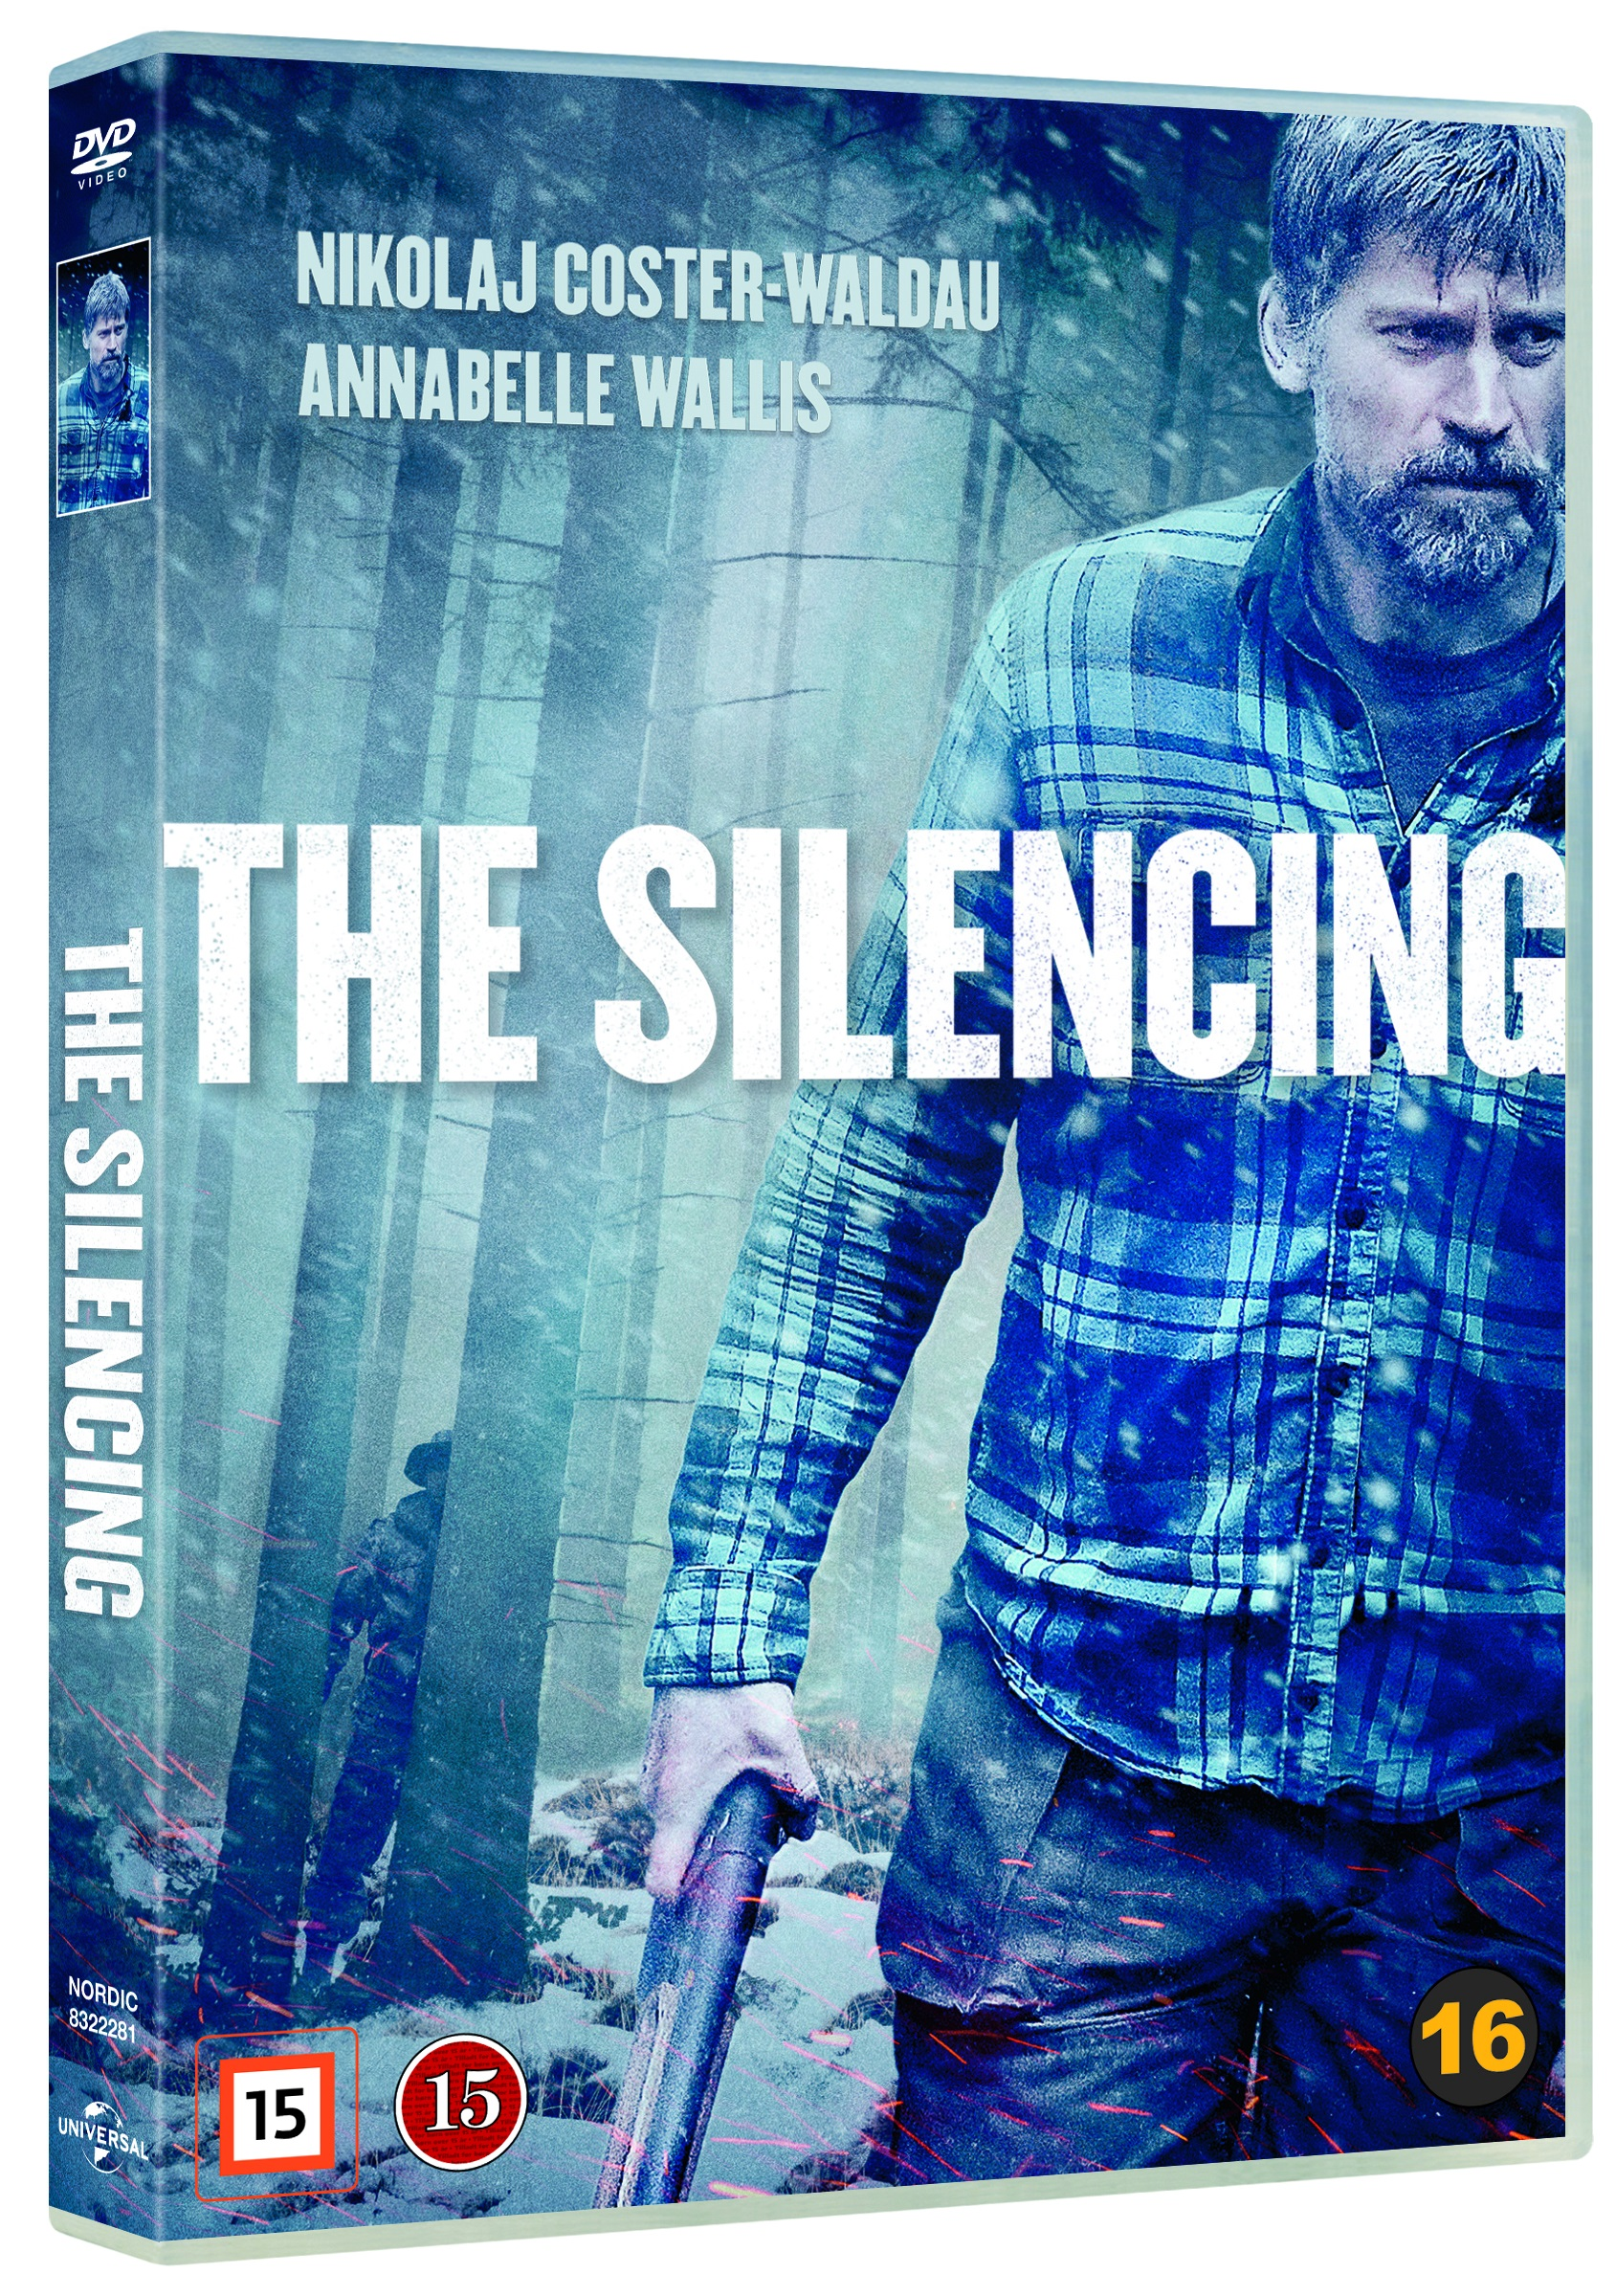 The Silencing -  - Film -  - 5053083222819 - October 19, 2020